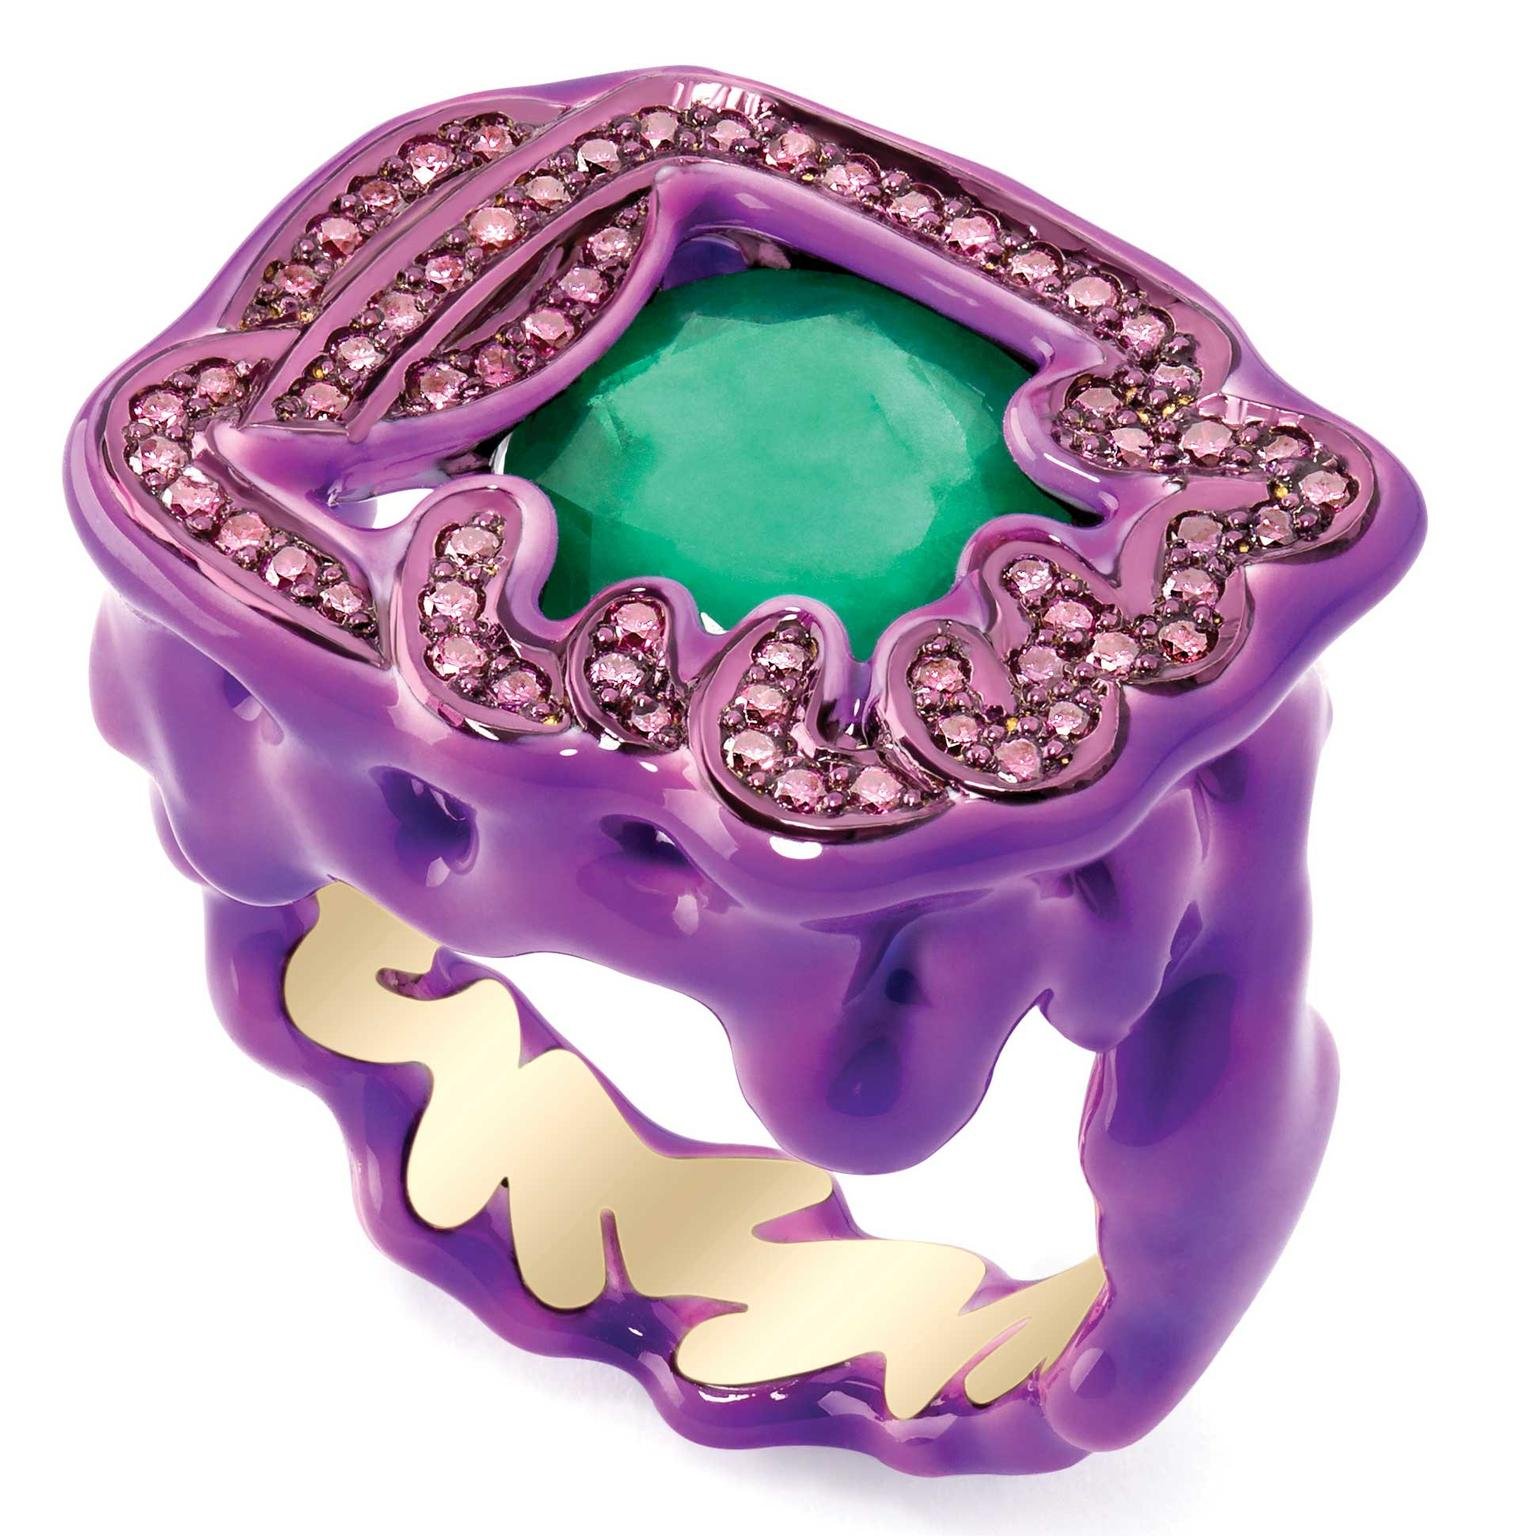 Solange Azagury Partridge Green and Purple ring